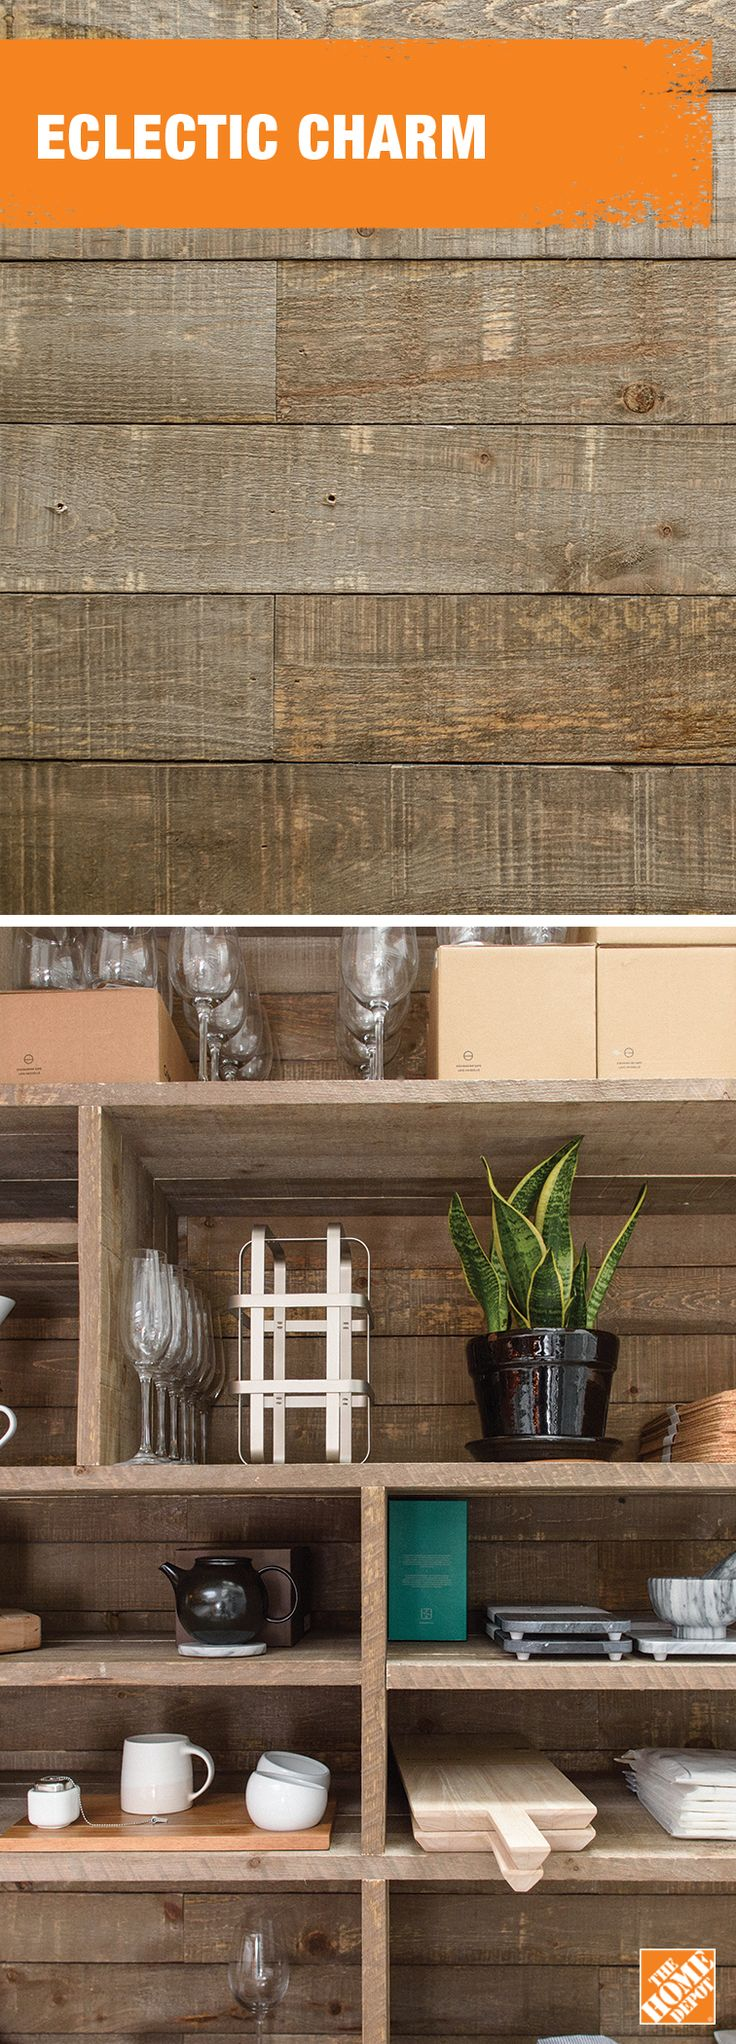 Add some charm to your space with an open faced barn board storage unit.Learn more at homedepot.ca.